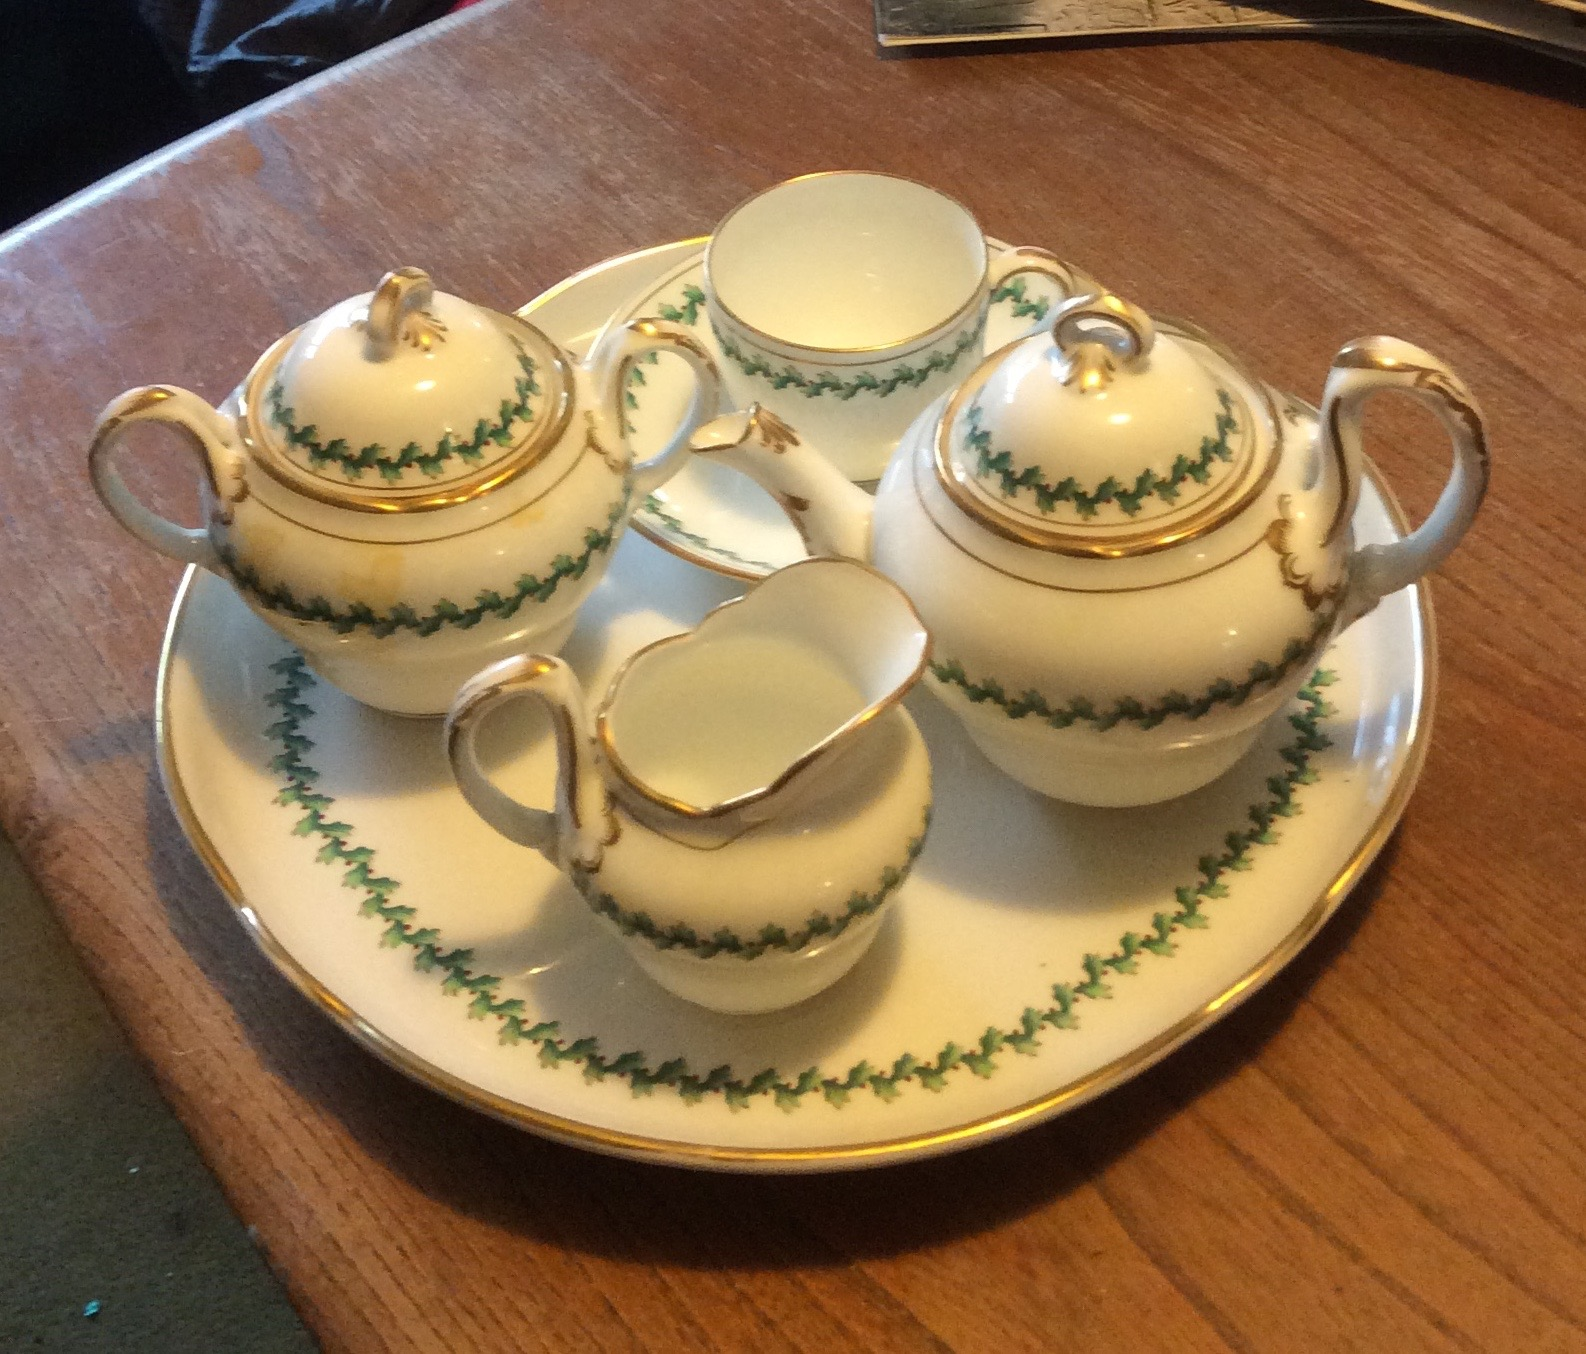 Lot 47 - English porcelain Solitaire tea service and tray